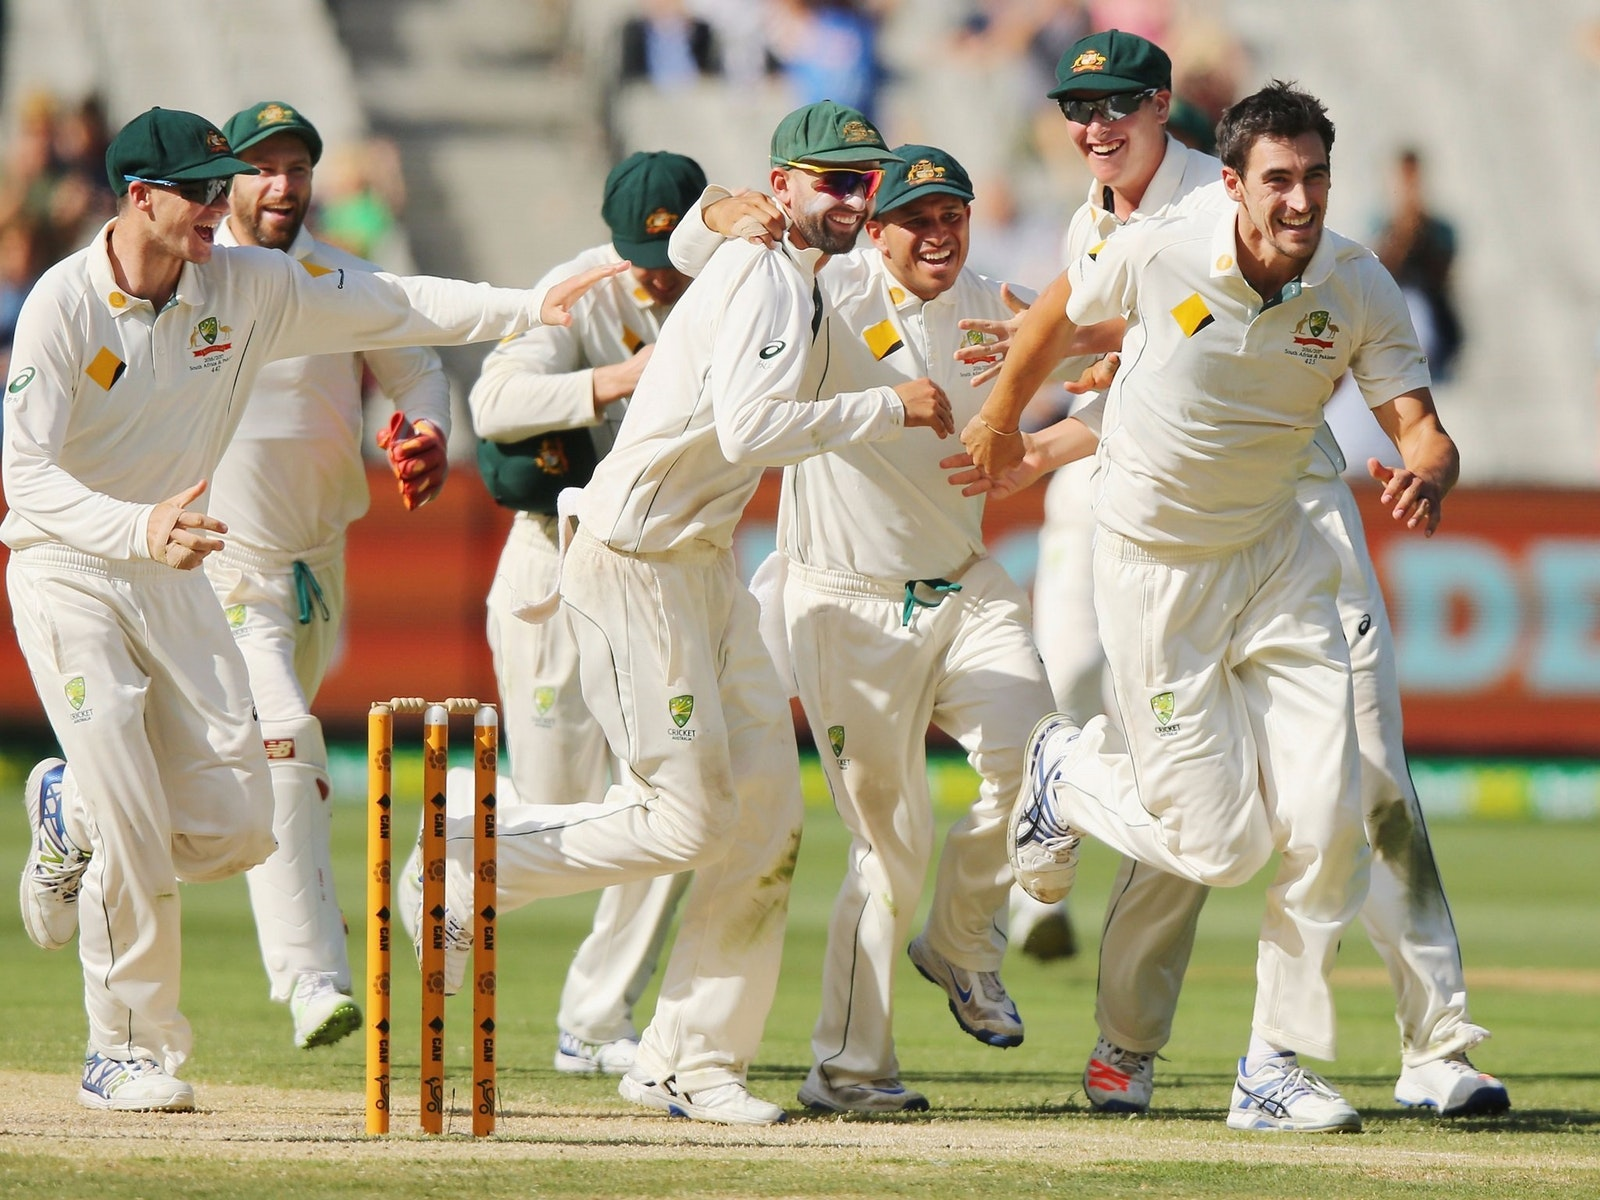 Australian Men's Test team celebrating a wicket,Getty Images/Cricket Australia, Michael Dodge